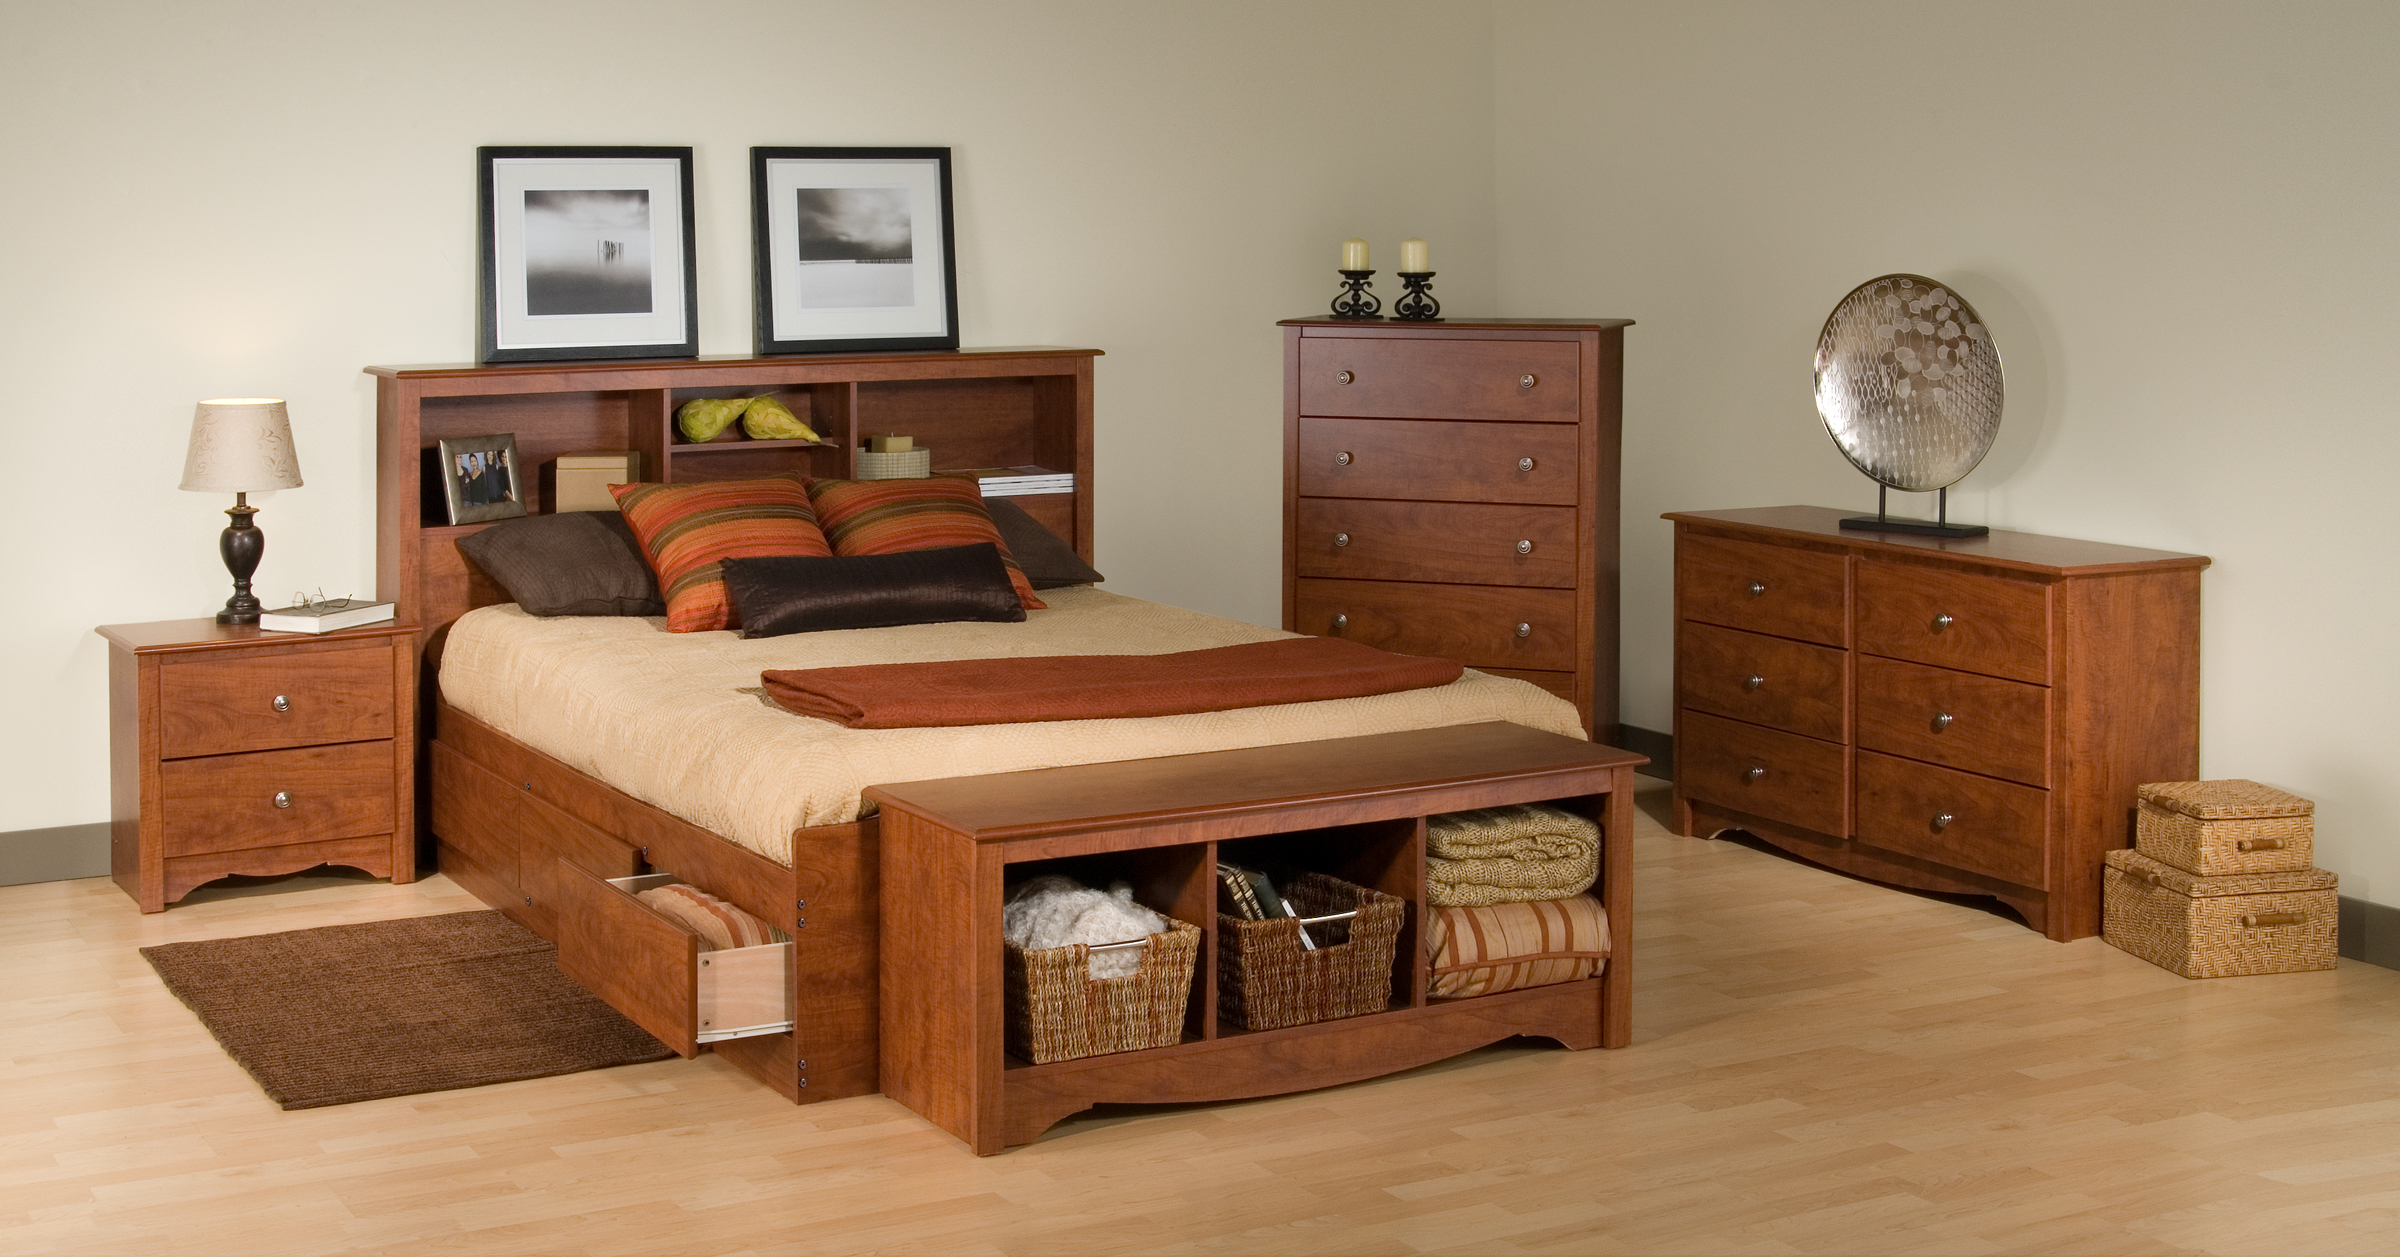 Home And Bedroom Back To School On Storage Beds Sale Allows Regular Kids To Live Like Celebrities